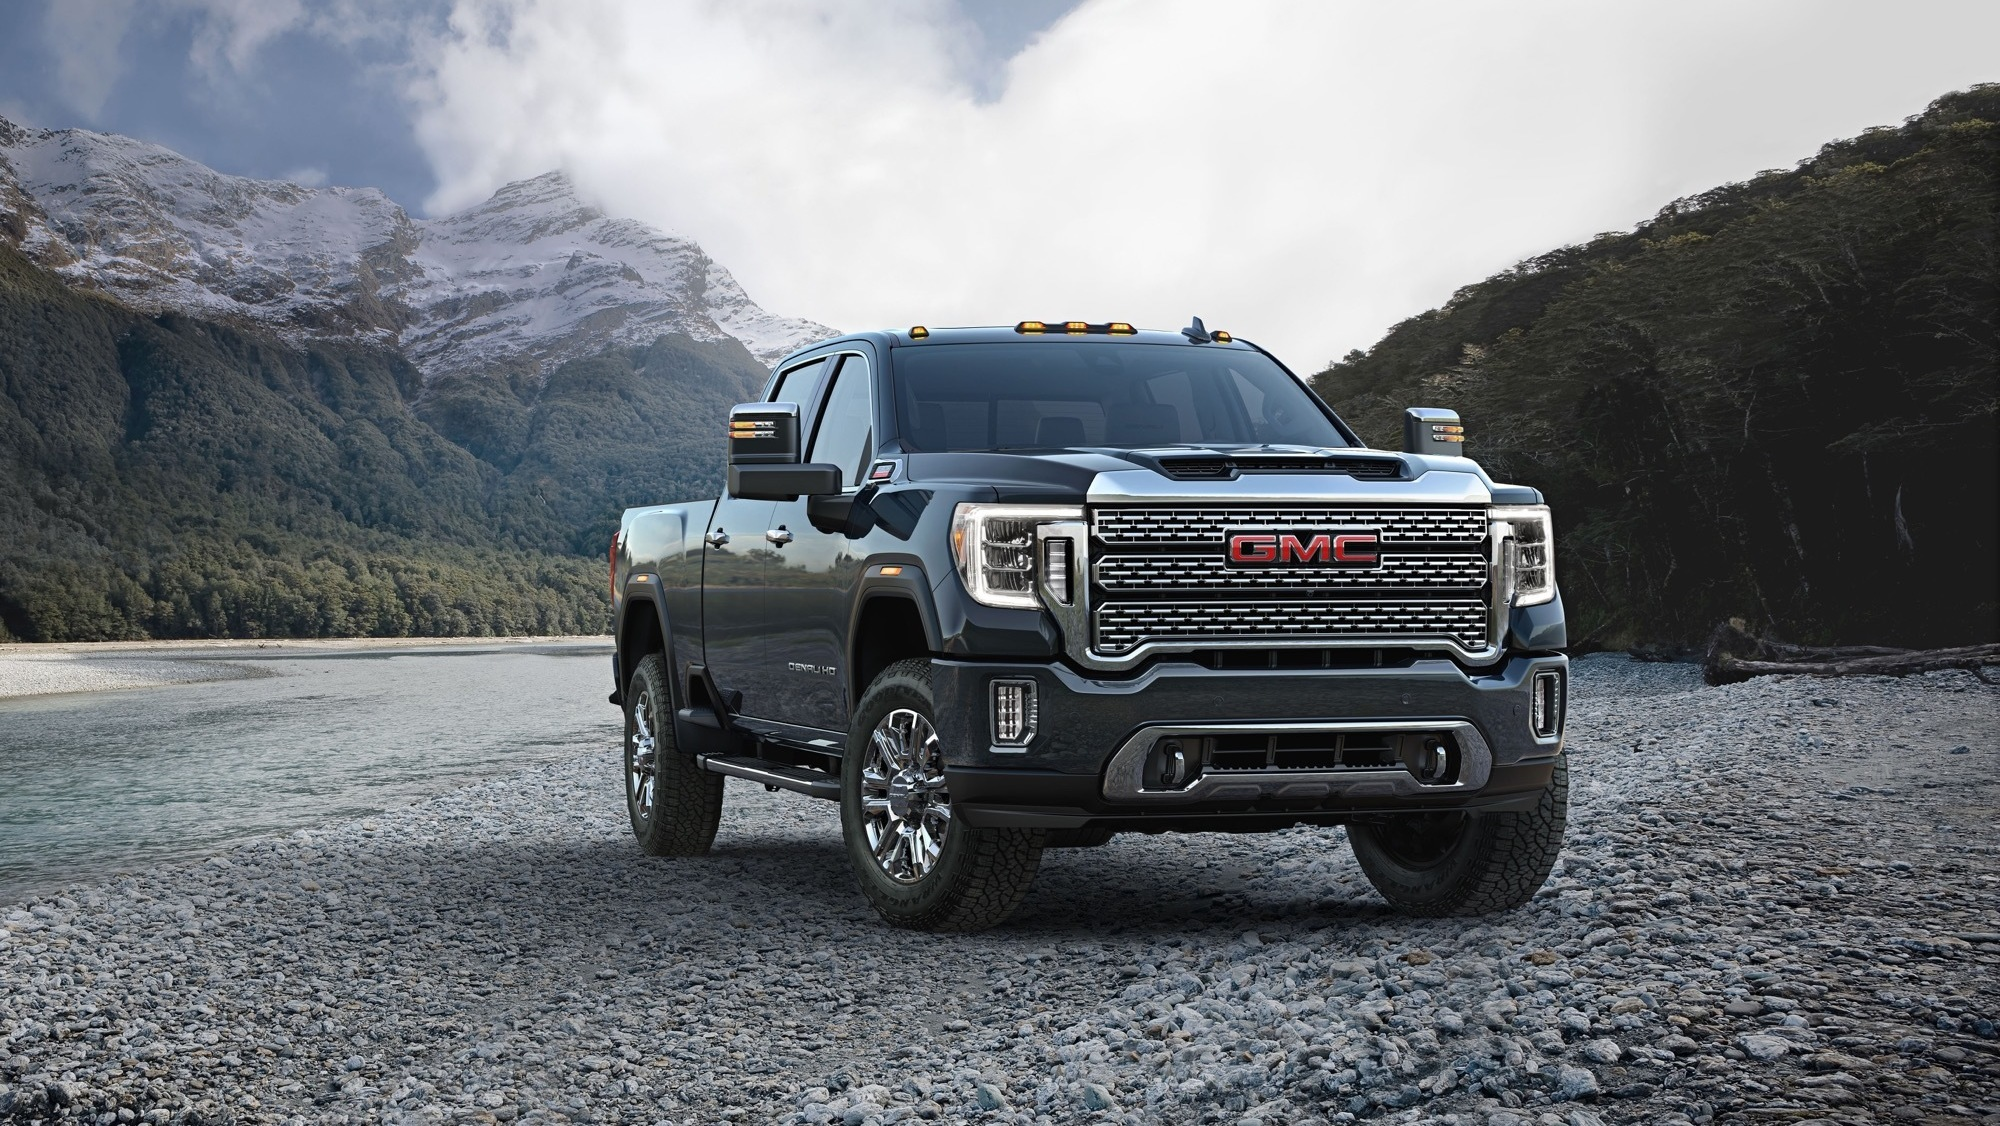 2020 GMC Sierra HD pickup truck revealed | Autoblog